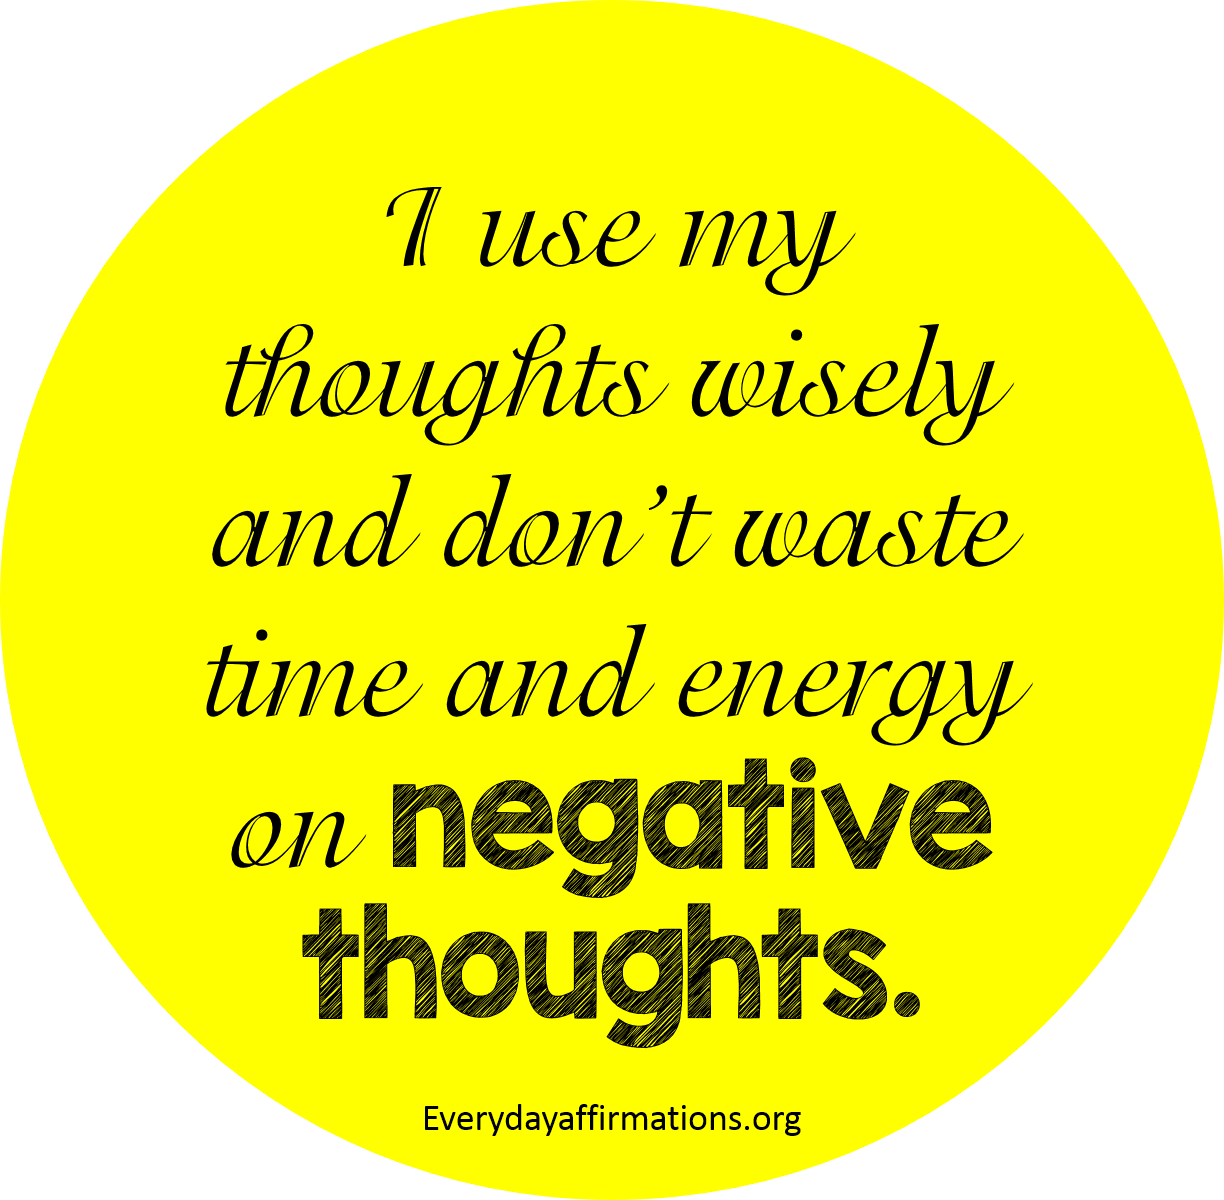 Best Wallpaper With Beautiful Quotes 18 Affirmations Mentally Strong People Use Everyday